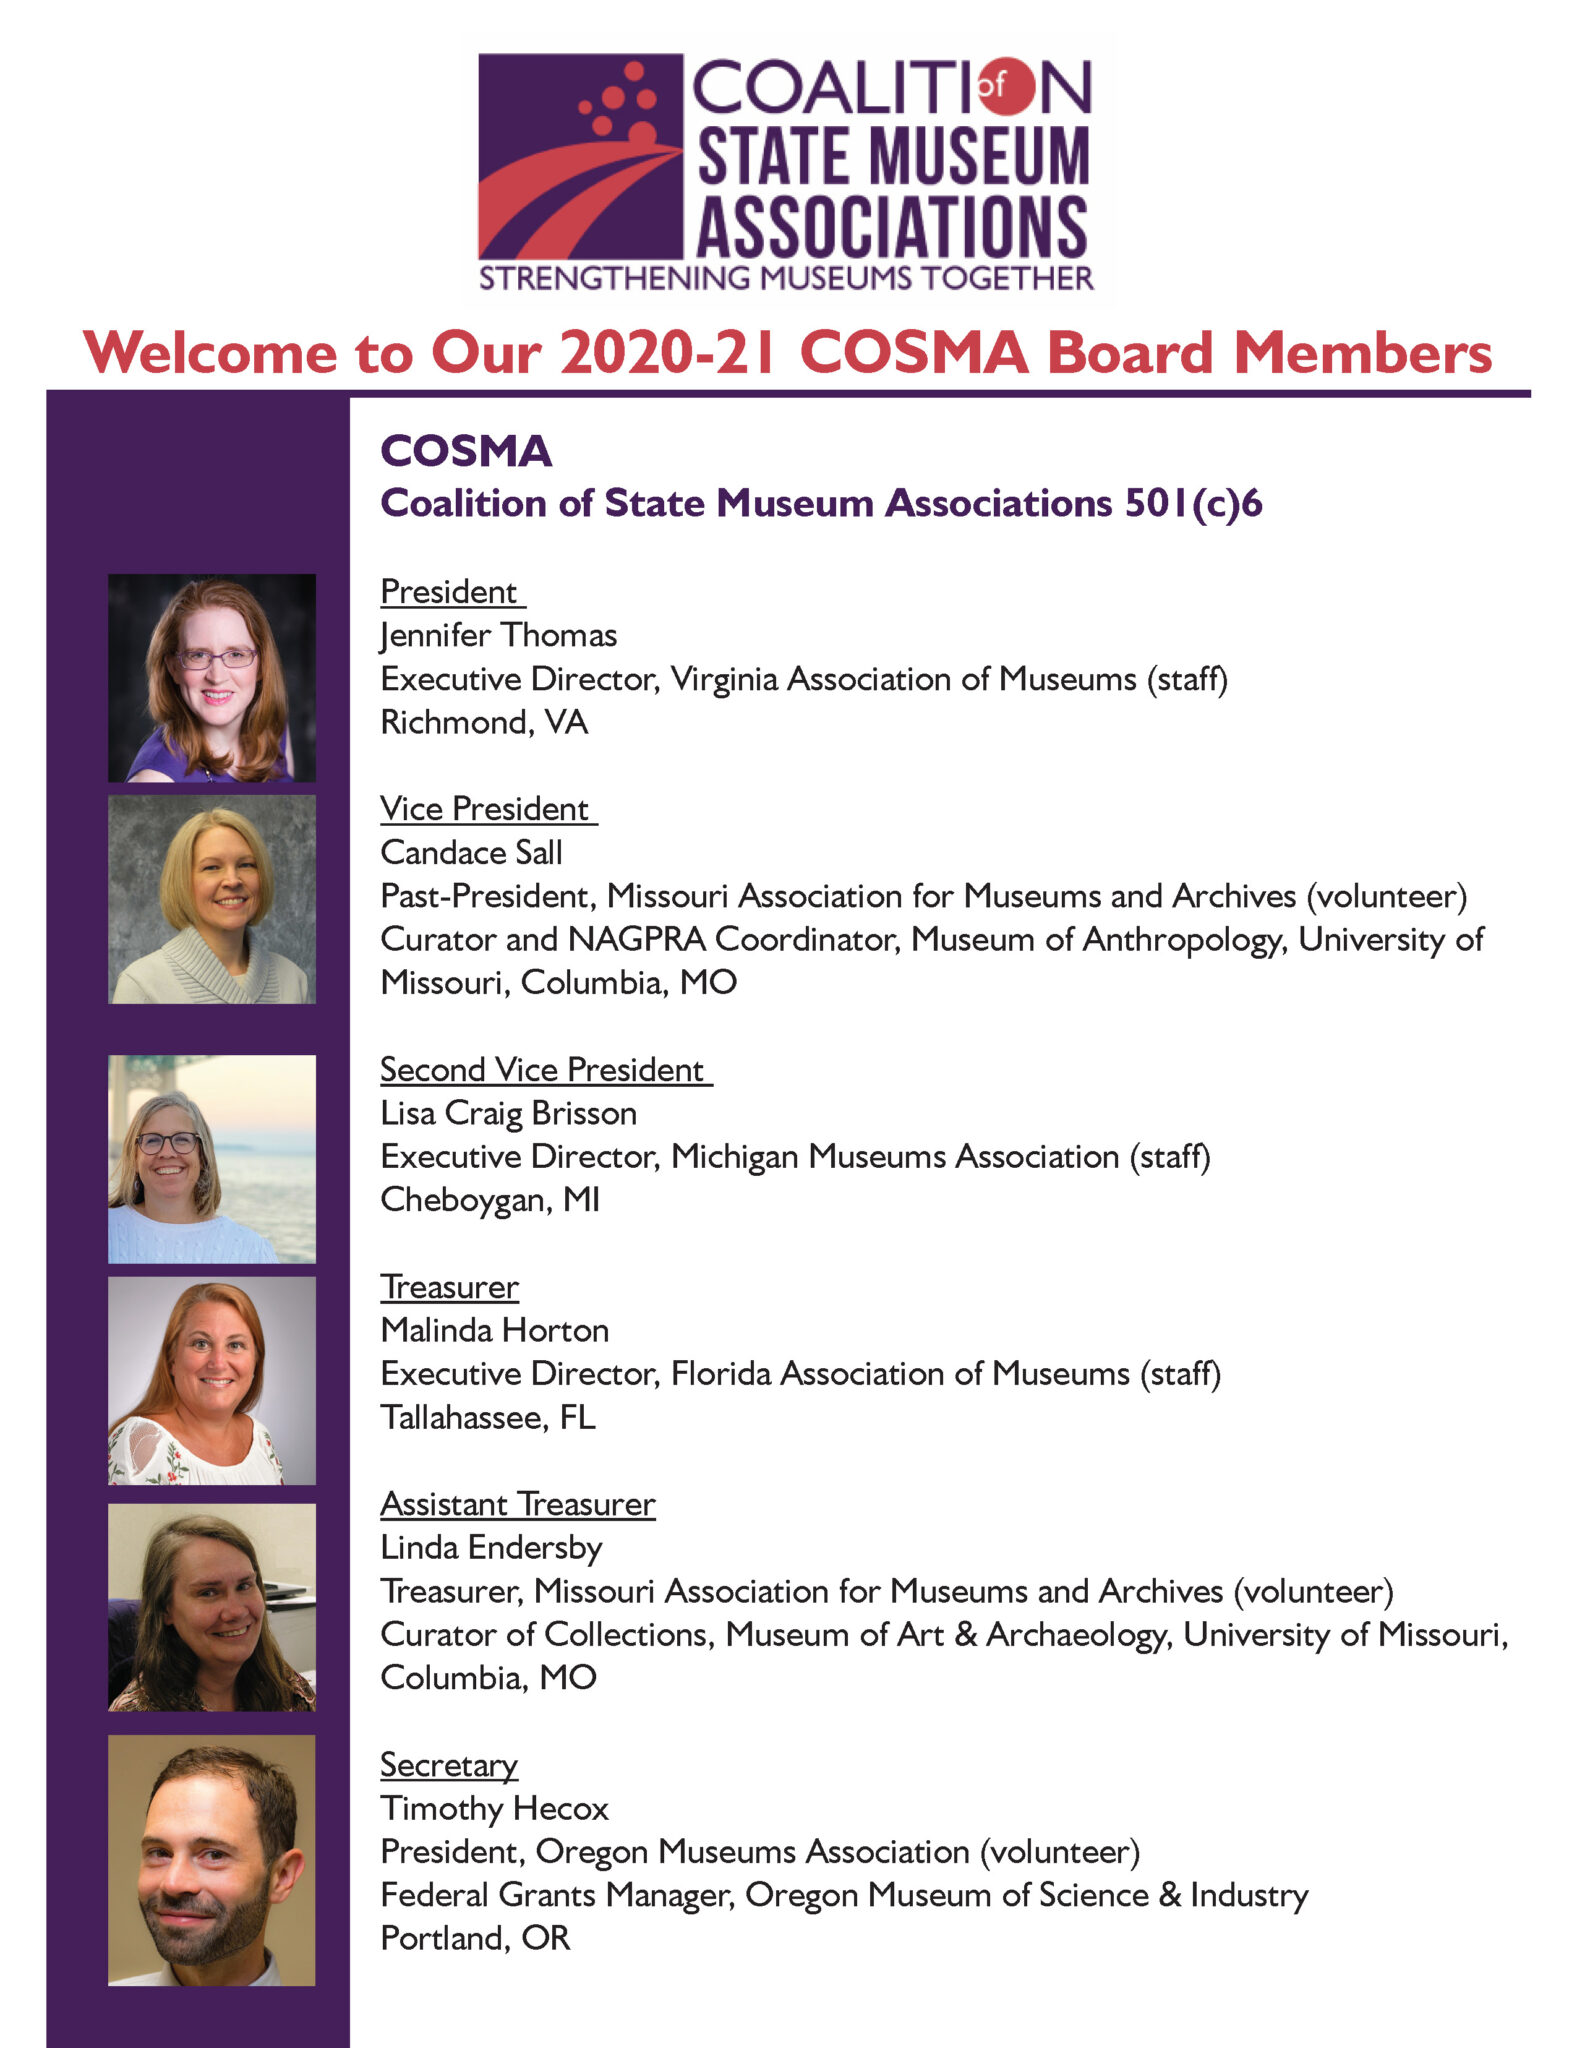 2020 COSMA Board Roster 3.20.21_Page_1